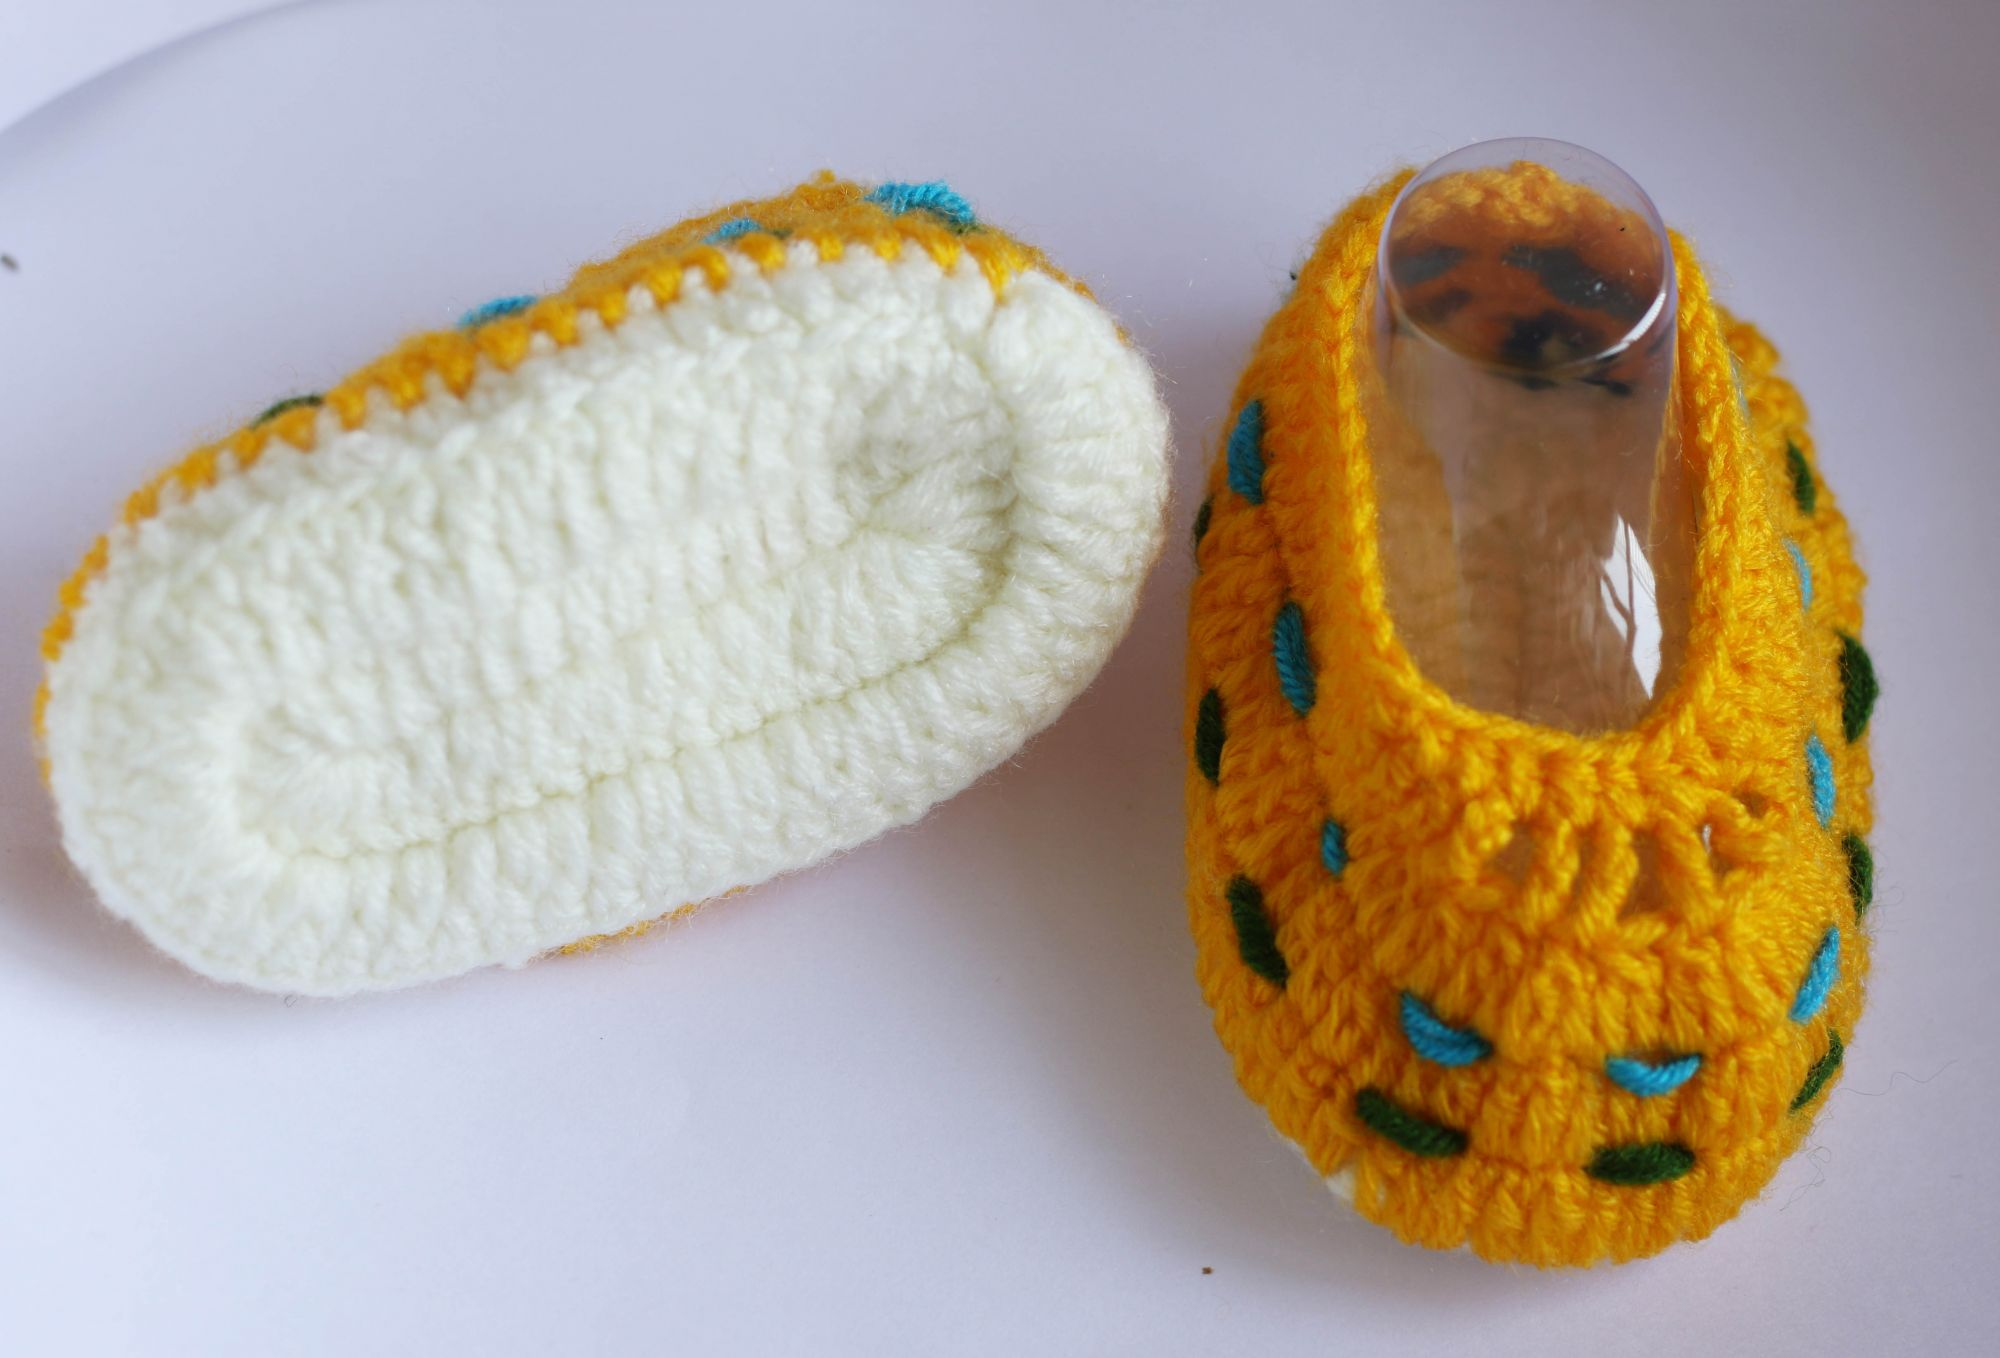 Woonie Yellow Handmade Woolen Booties